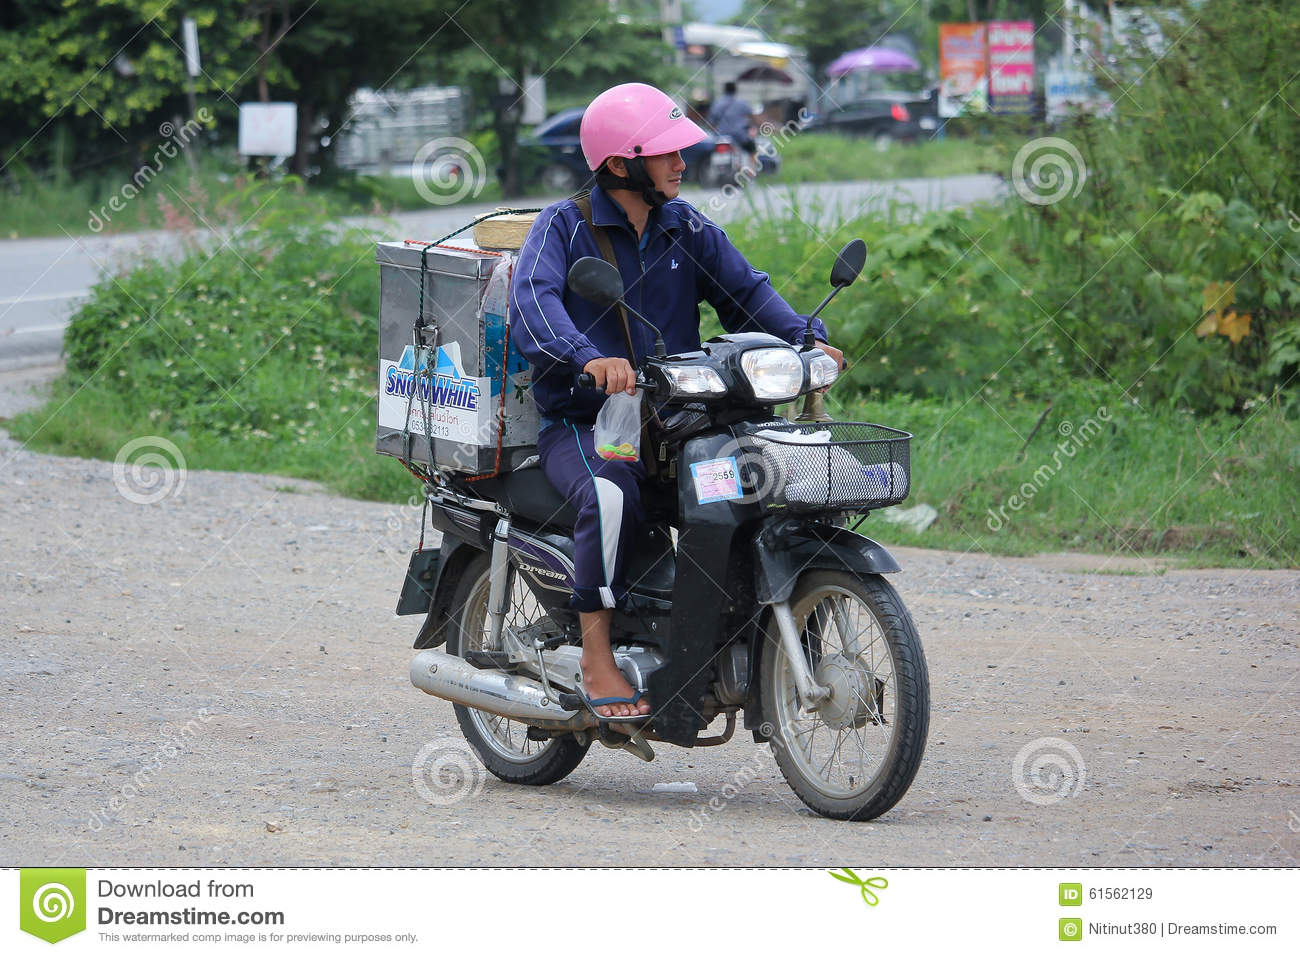 Icecream Sale On A Motorcycle Editorial Stock Image - Image